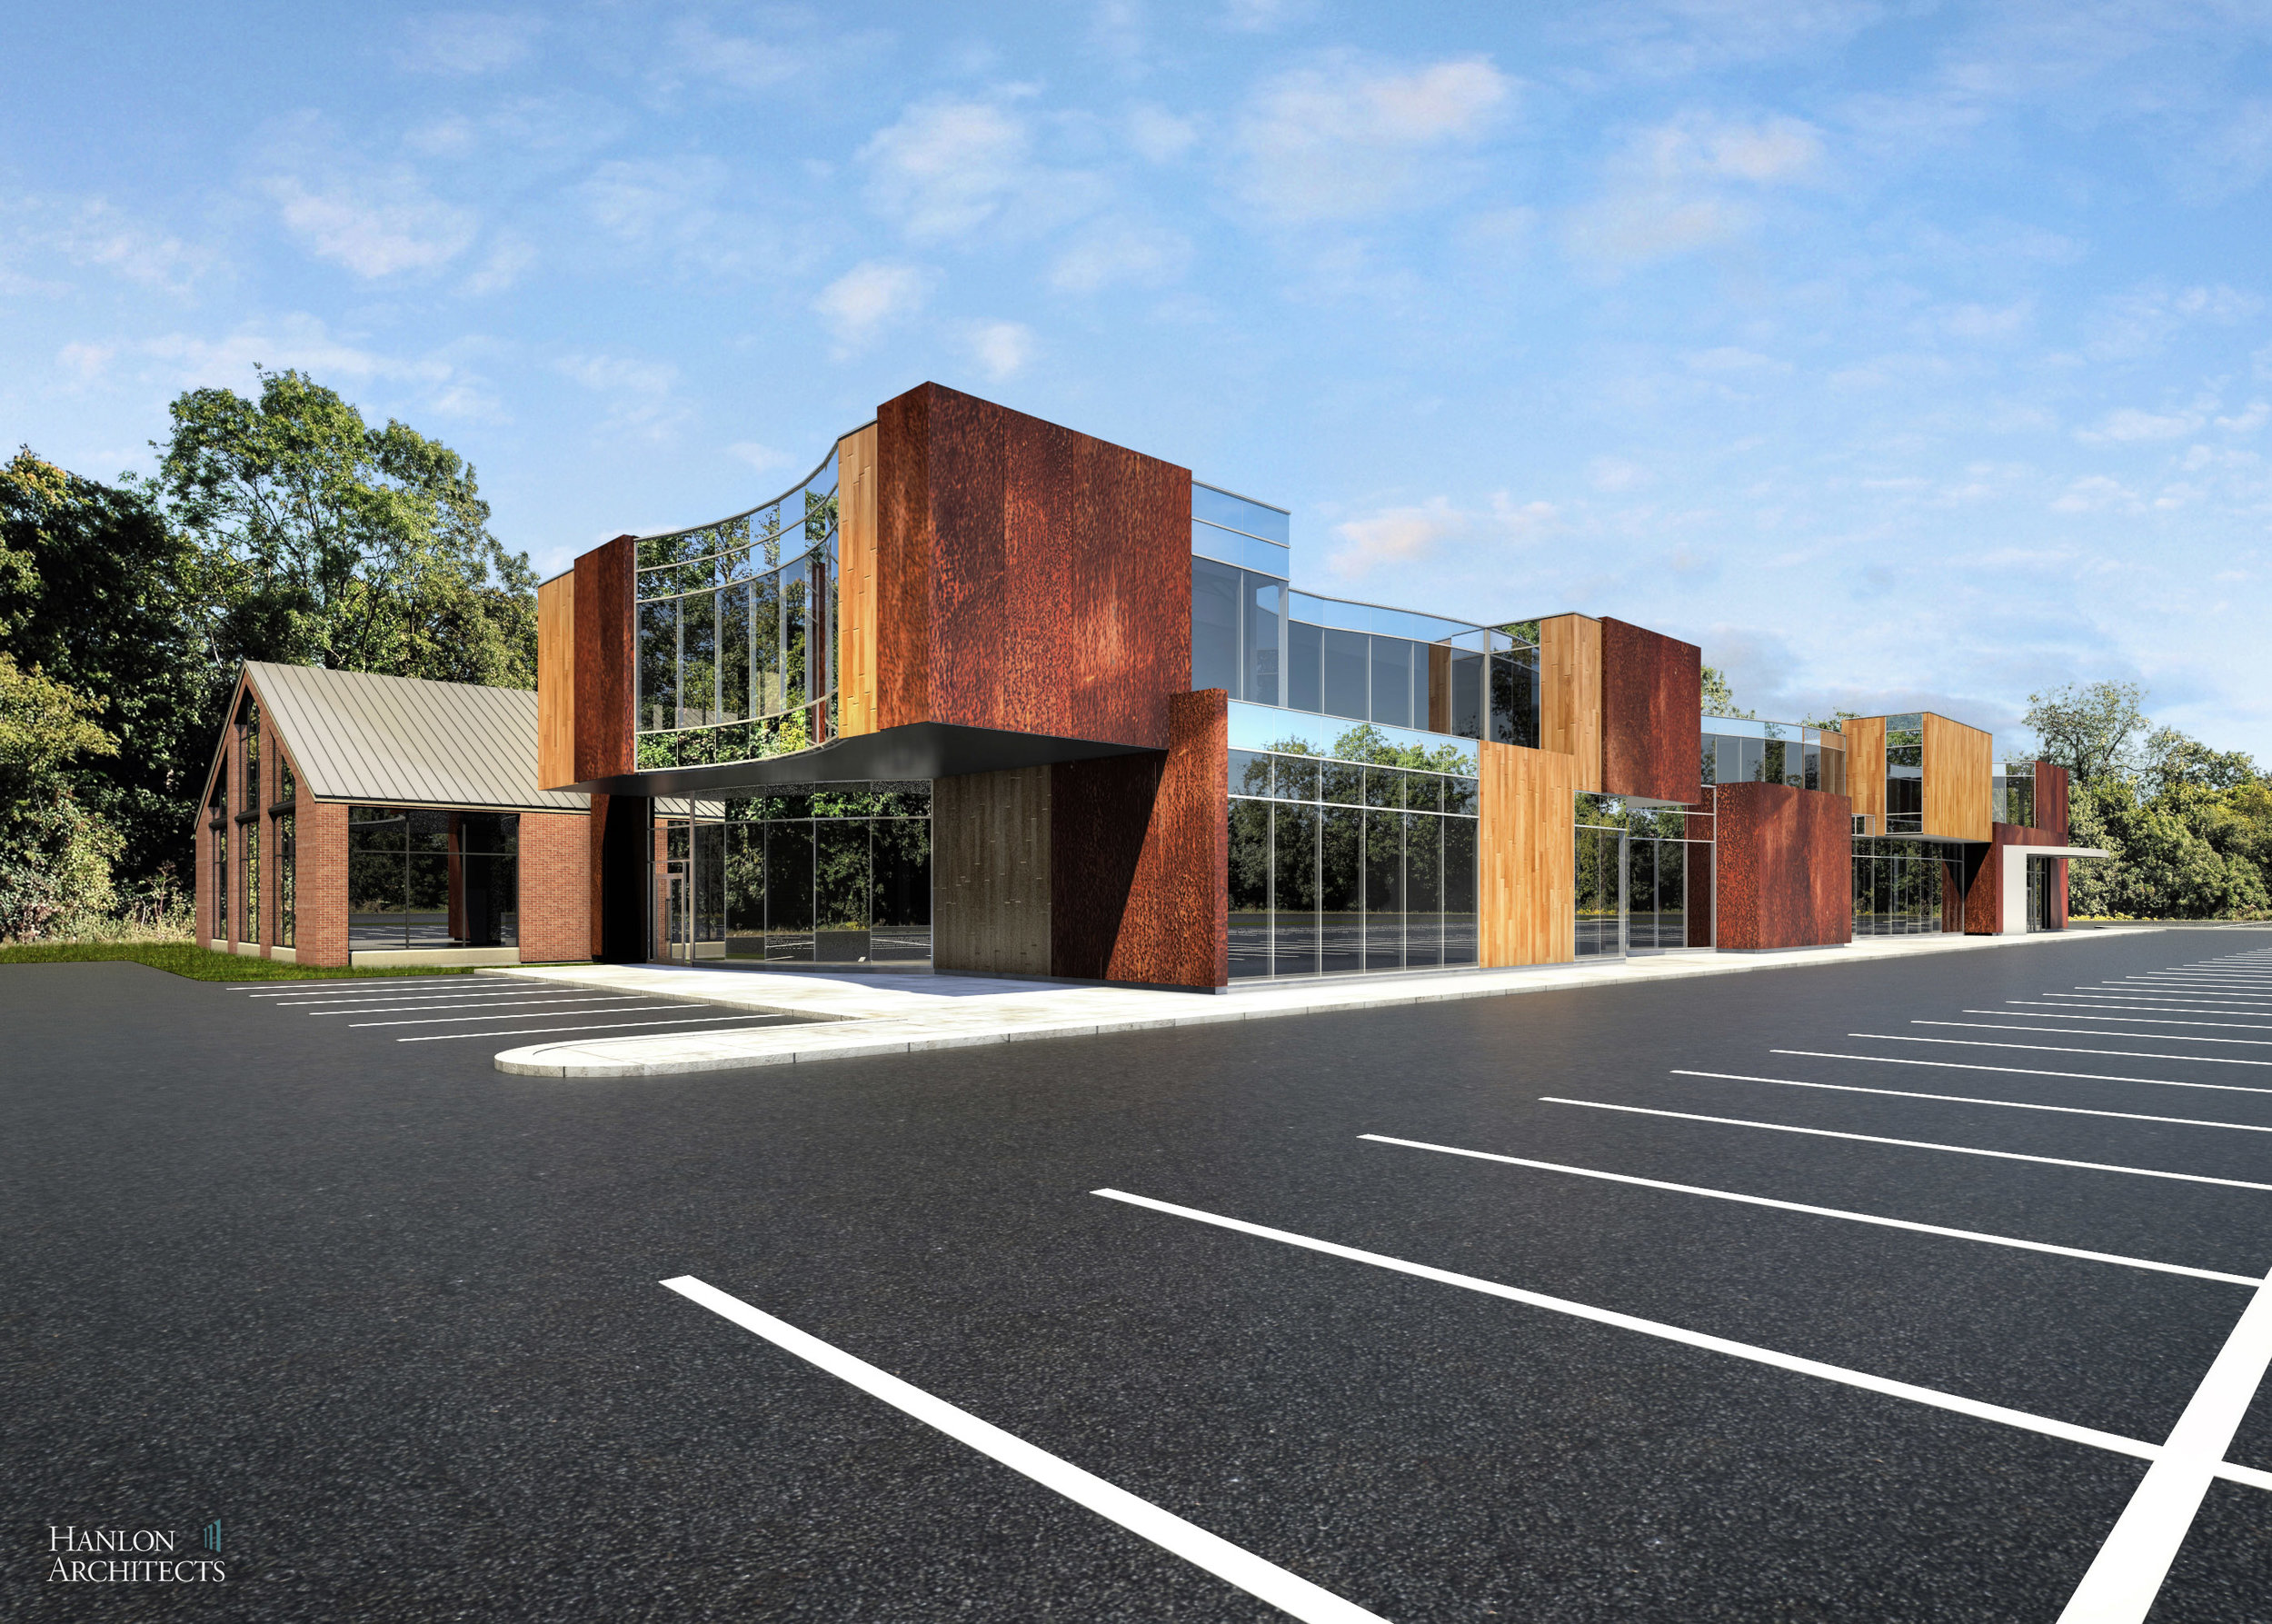 Culver-Road-Armory-_-Building-2-_-Proposed-Rendering.jpg